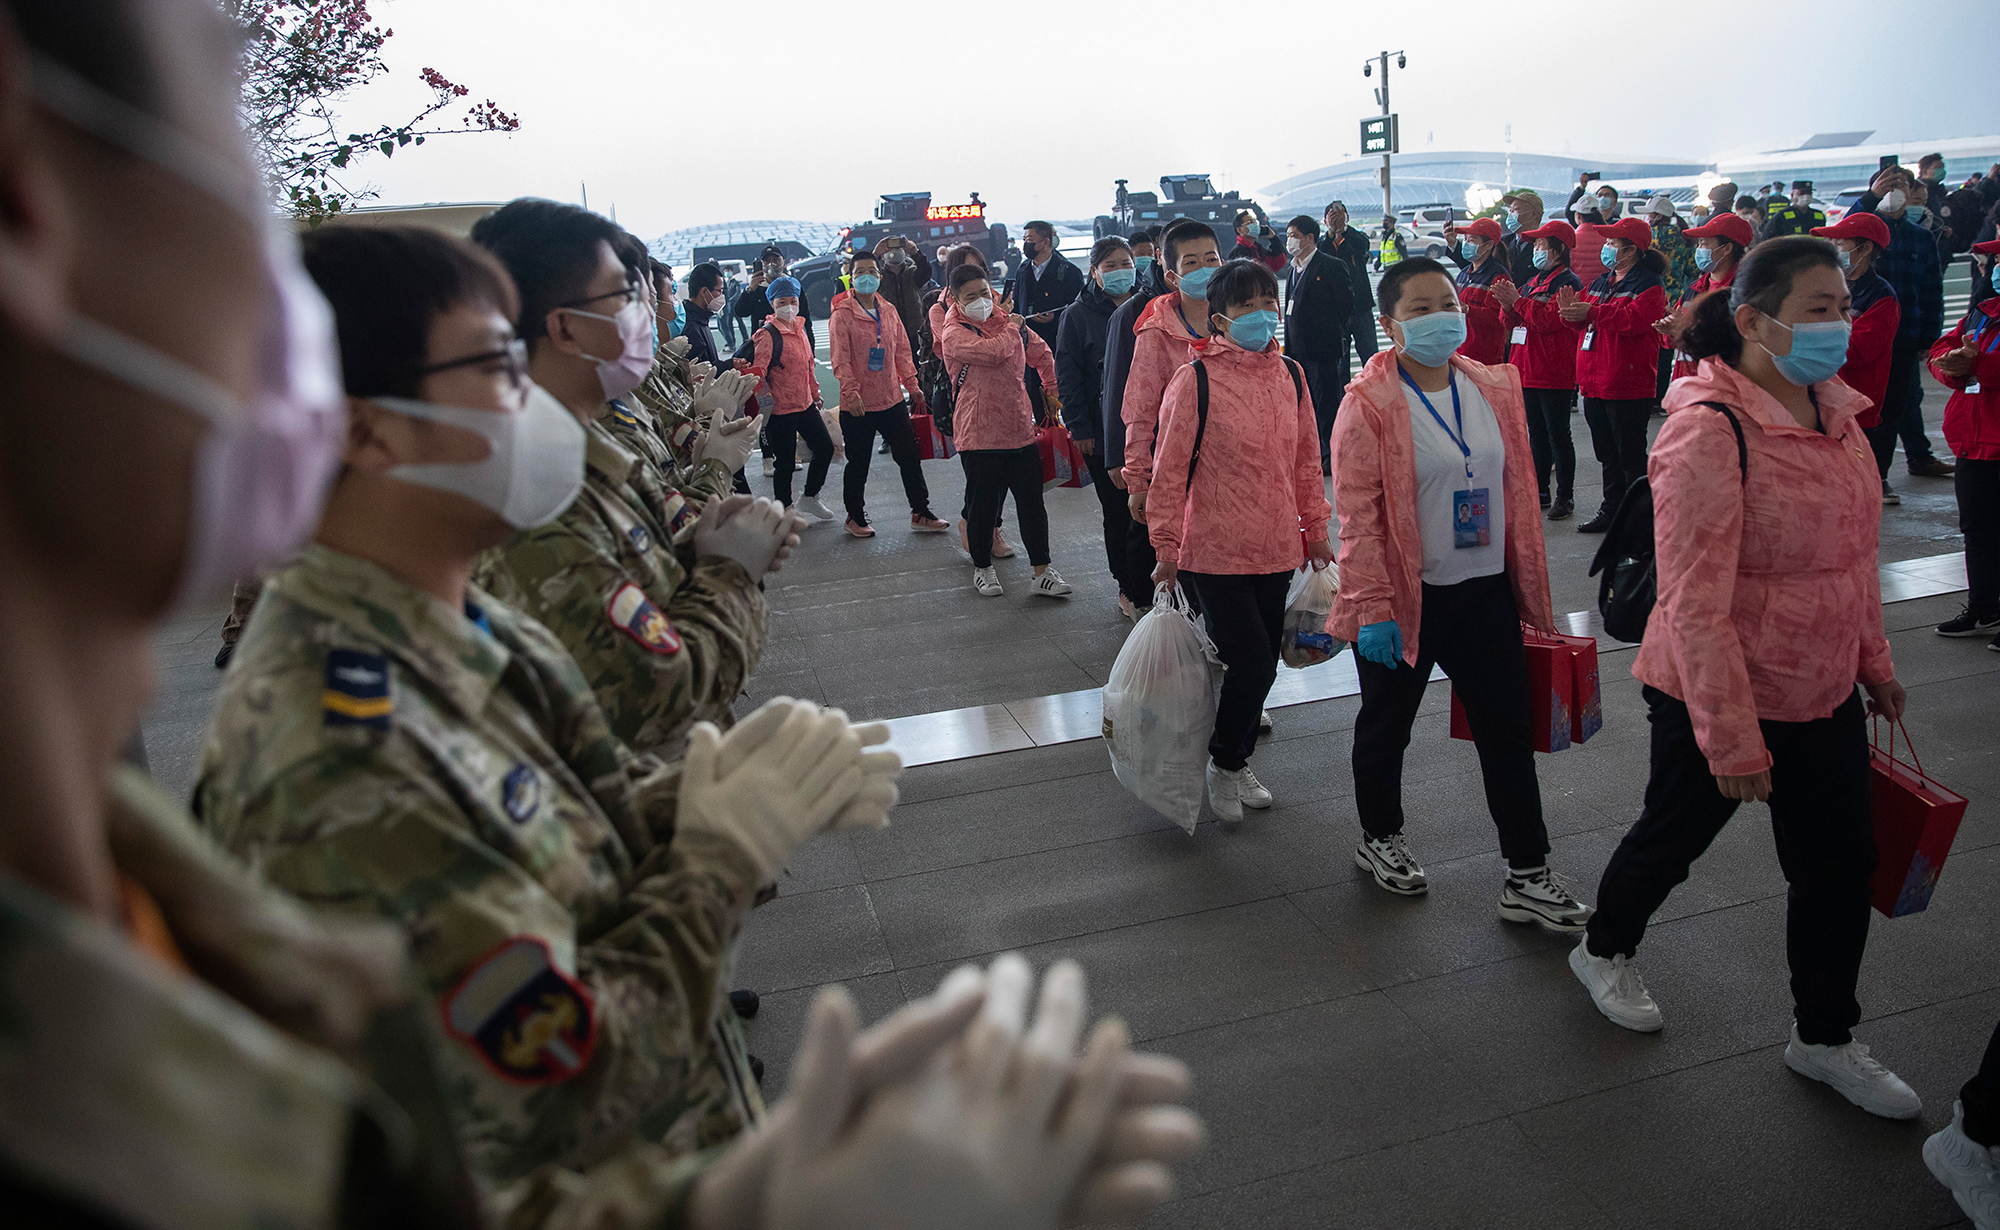 In this March 18 photo released by China's Xinhua News Agency, people applaud as departing medical workers enter Wuhan Tianhe International Airport in Wuhan in central China's Hubei Province.